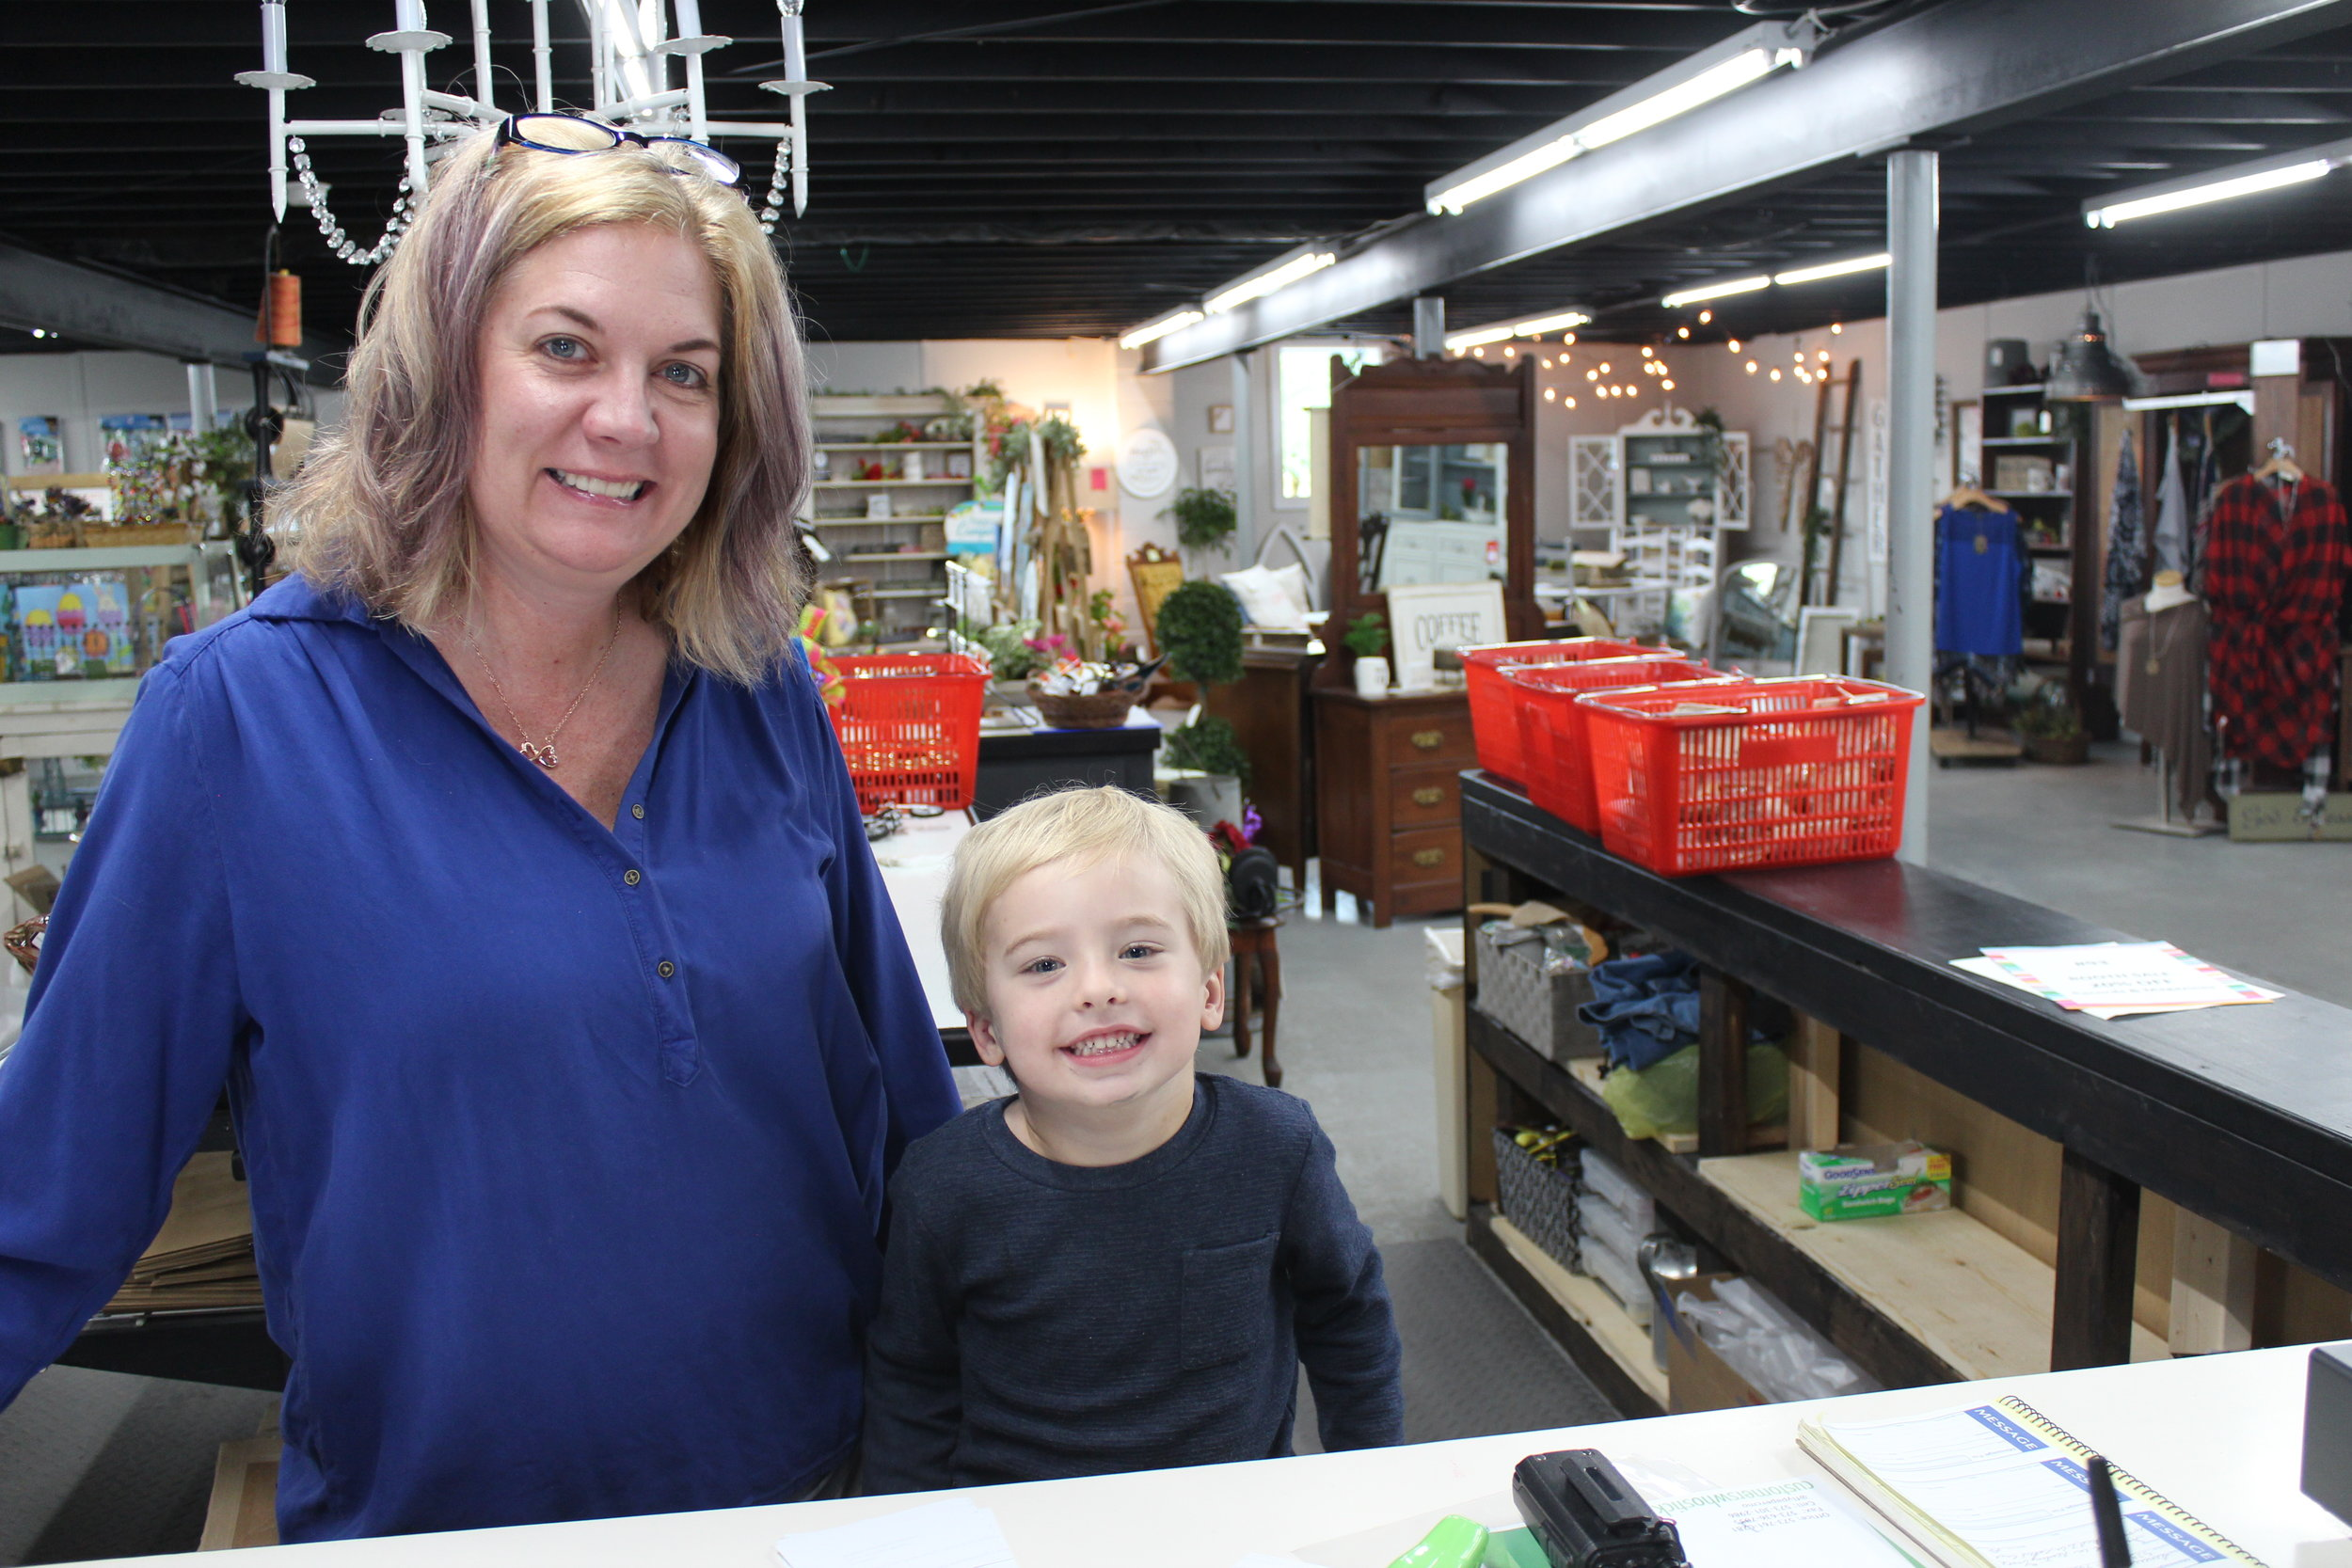 Cherri can often find some extra help at the front counter when her grandson, Brady, comes in.